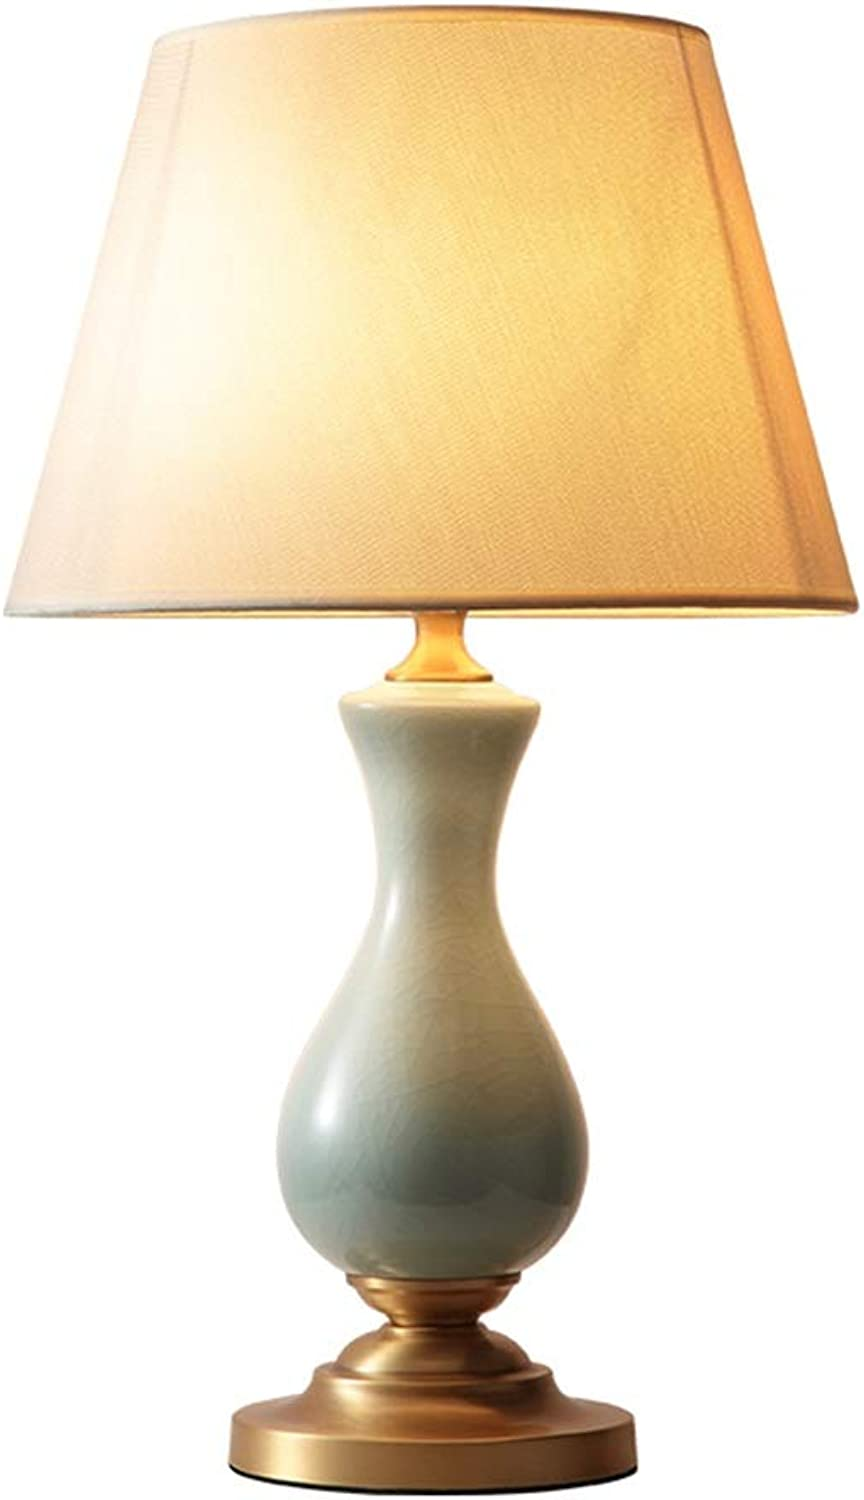 Noble.store Table Lamp Bedroom Decoration Table Lamp Simple Household Bedside Lamp Ceramic Fabric Living Room Table Lamp 4628 Table lamp